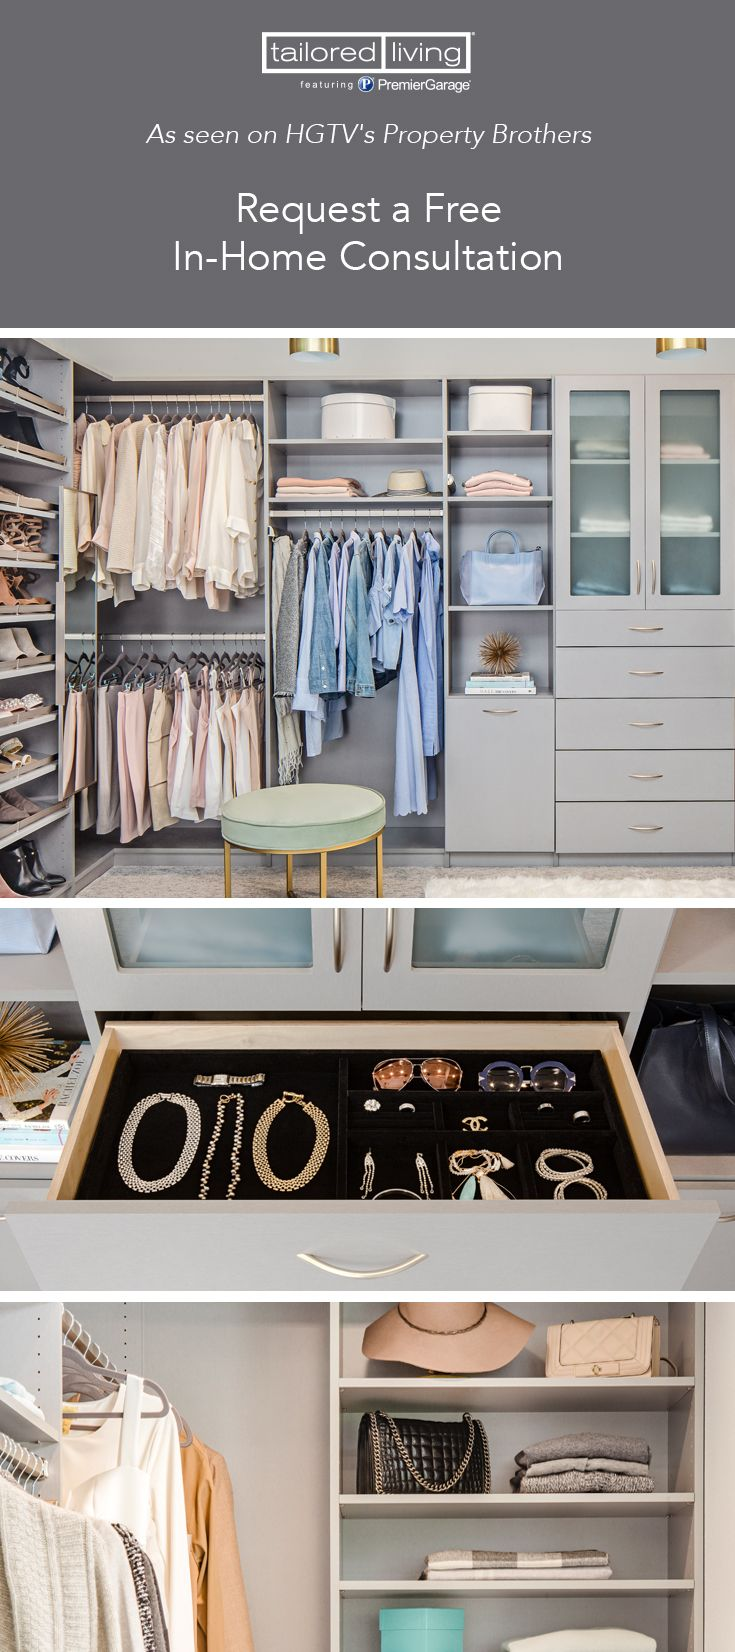 Build Your Dream Closet! Request A Free In Home Consultation Today And Save  Up To 300!*